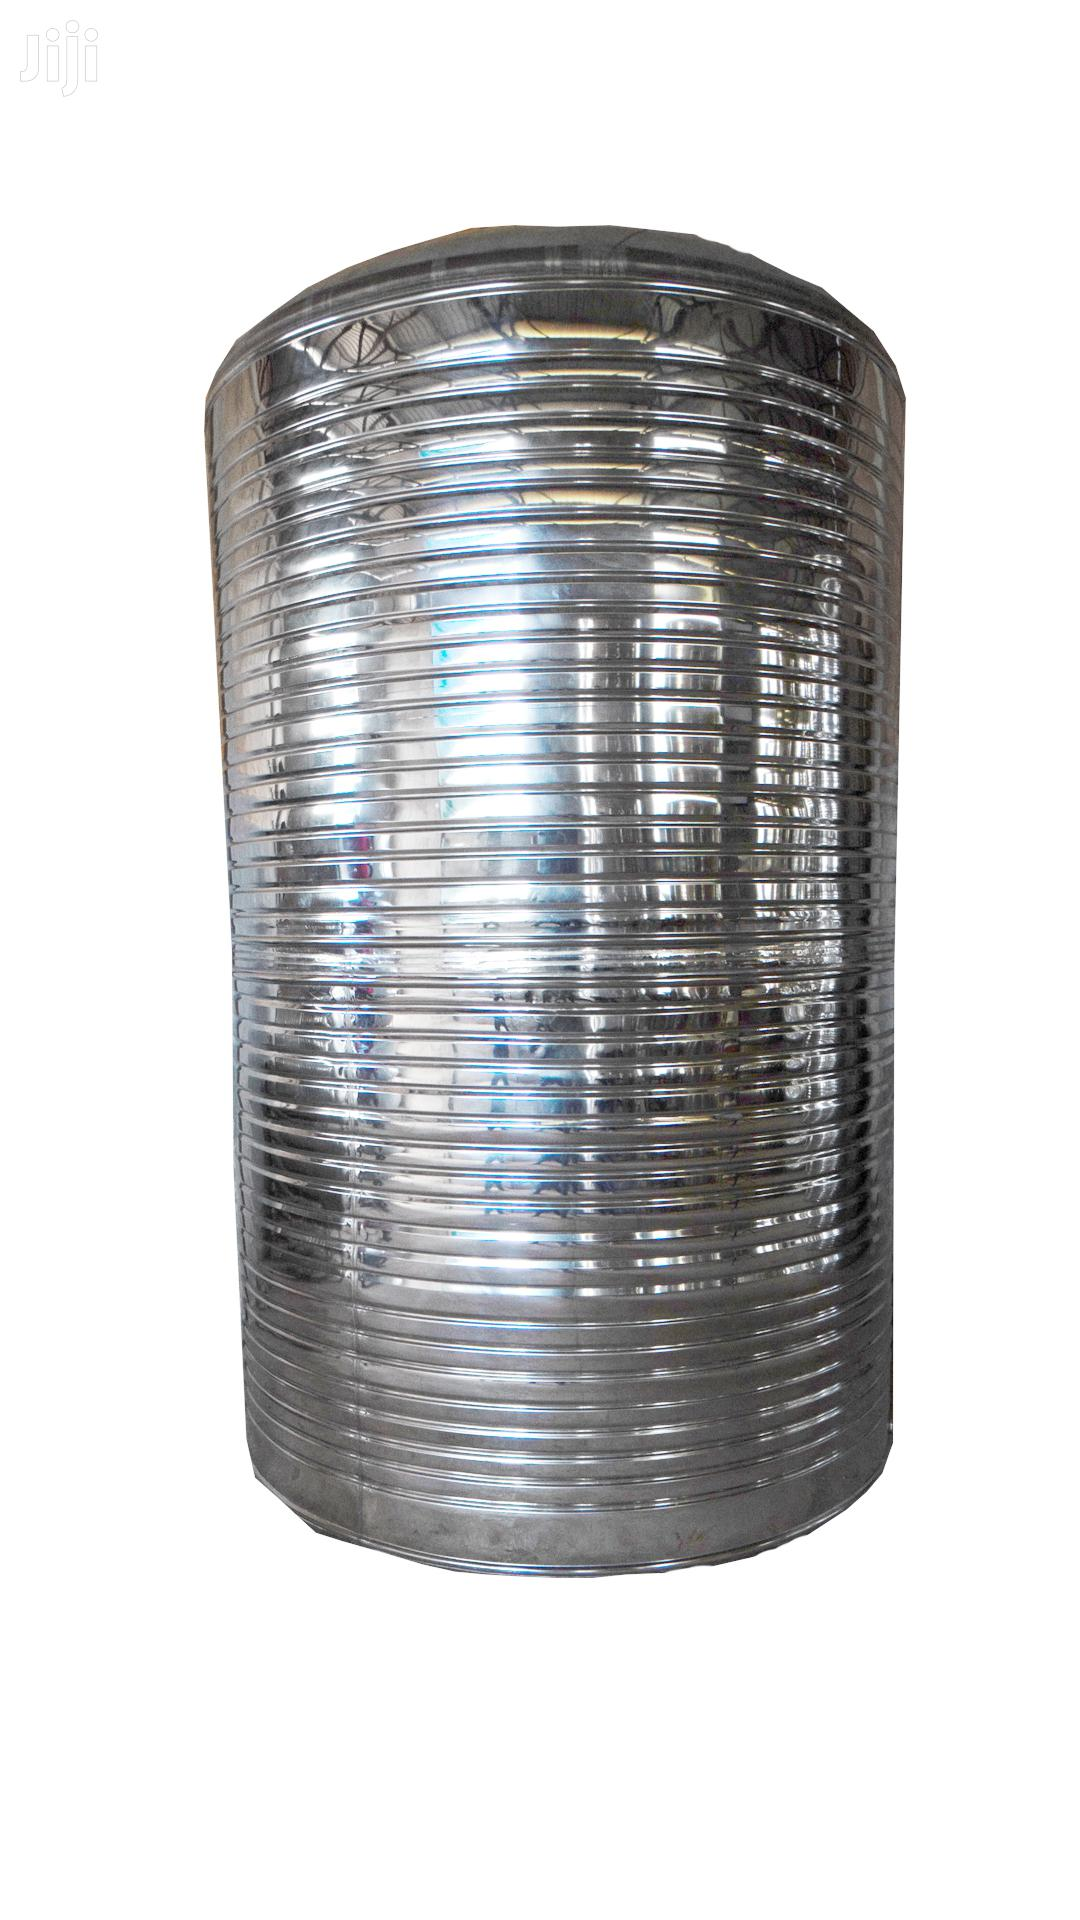 5000 Litres Vertical - Stainless Steel Tanks | Plumbing & Water Supply for sale in Kampala, Central Region, Uganda